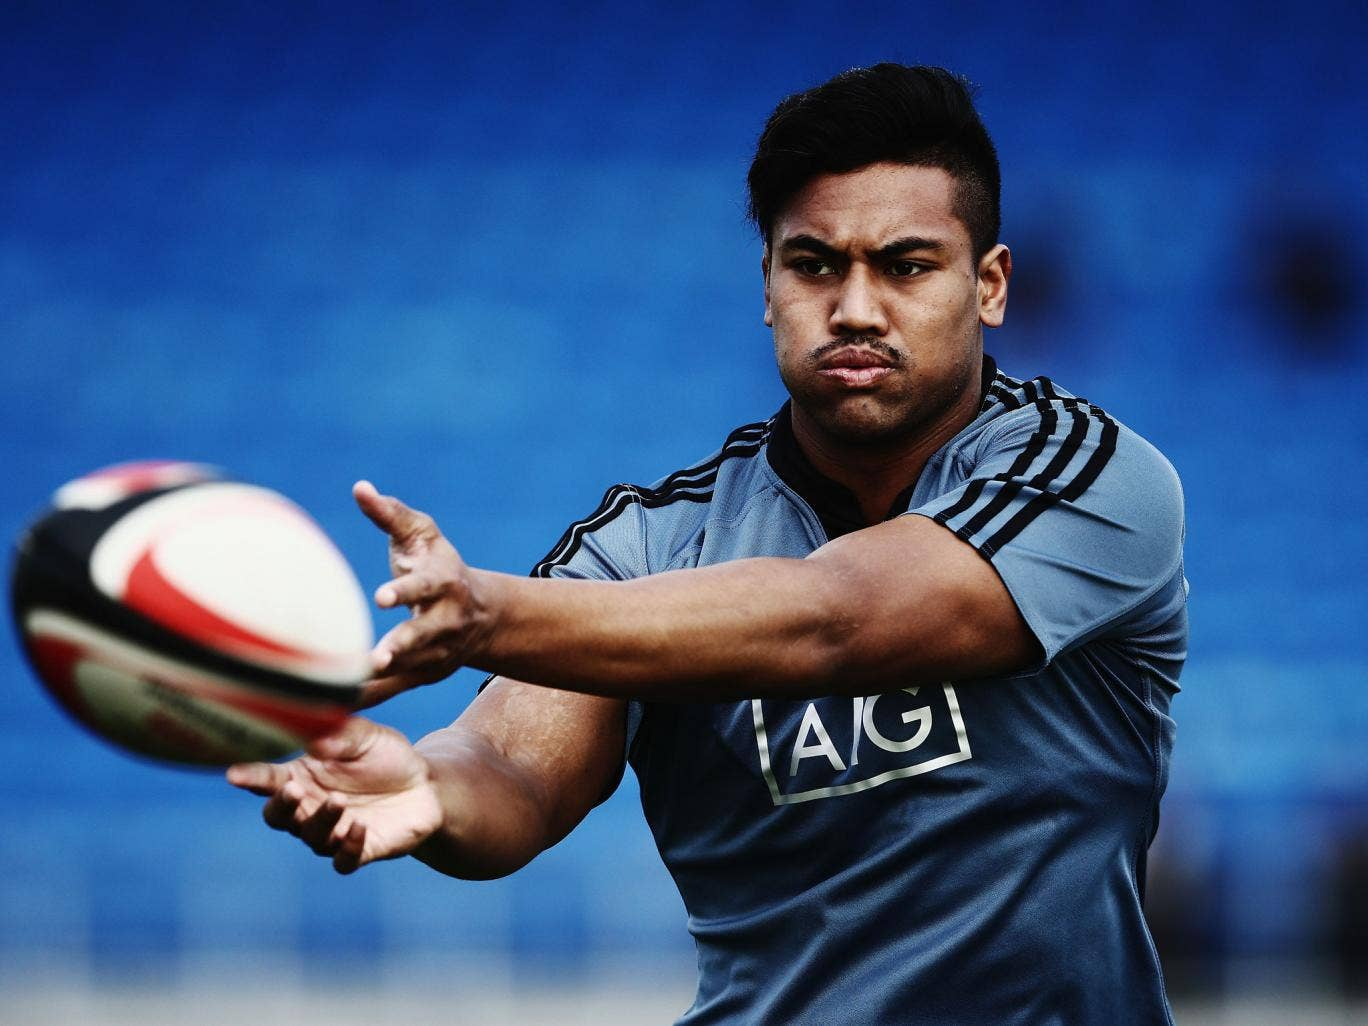 Julian Savea of the All Blacks runs through drills during a New Zealand All Blacks training session